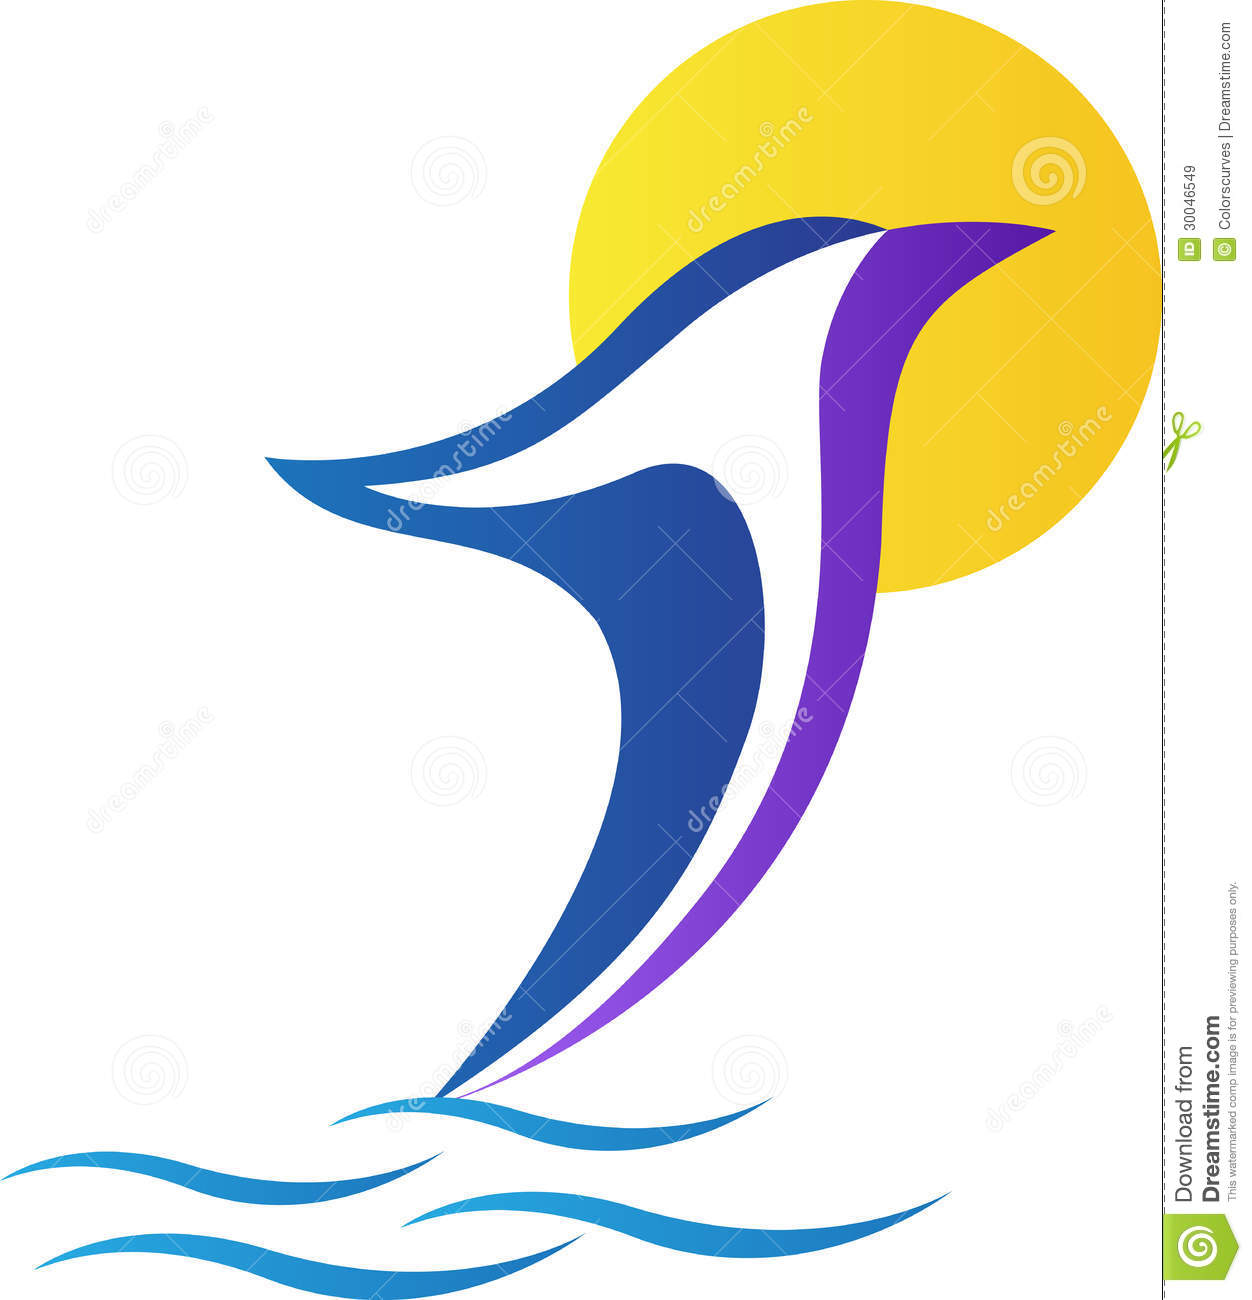 Dolphin Logo Royalty Free Stock Images - Image: 30046549